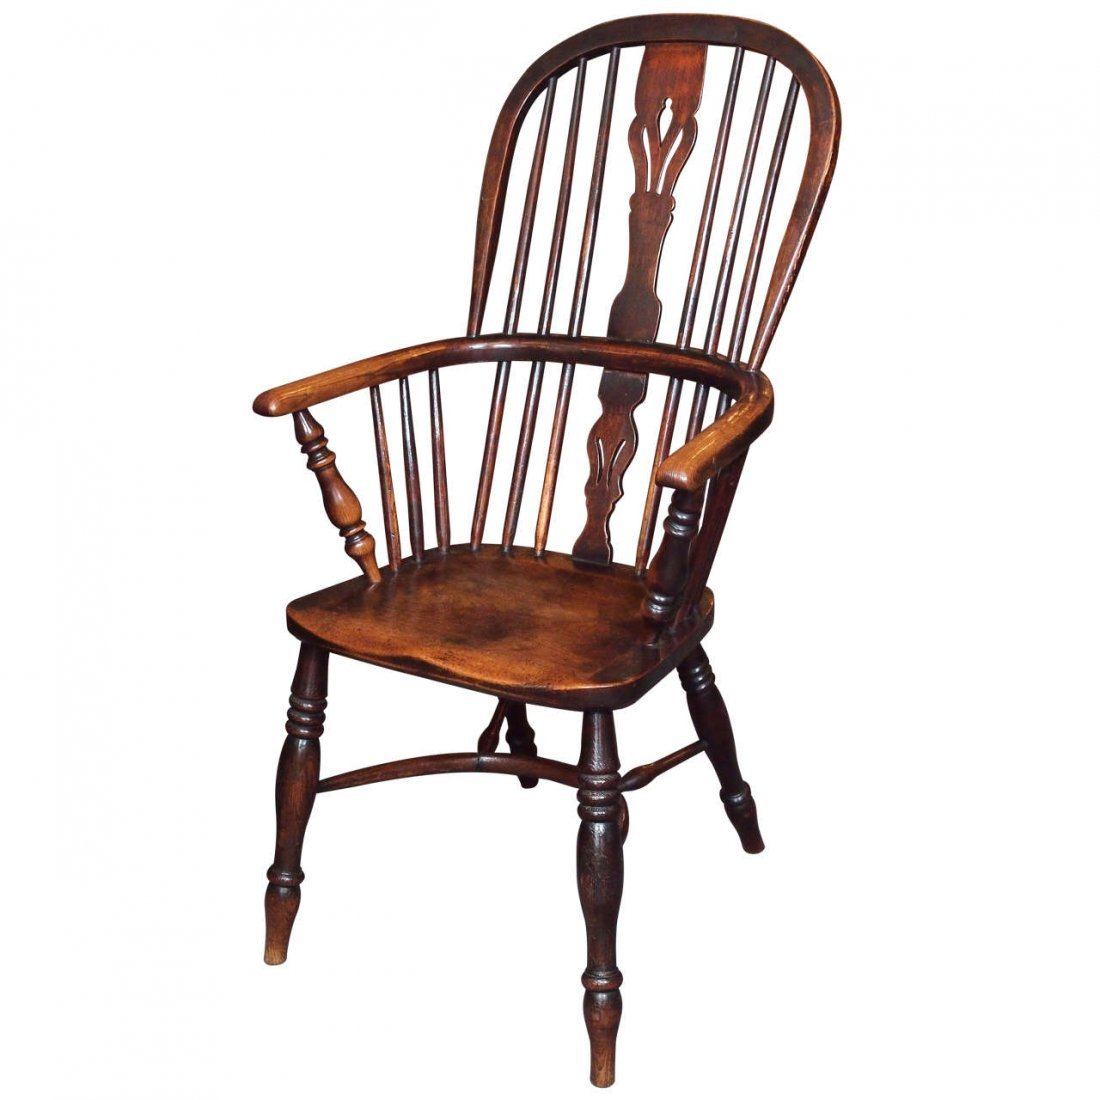 Period Windsor Chair